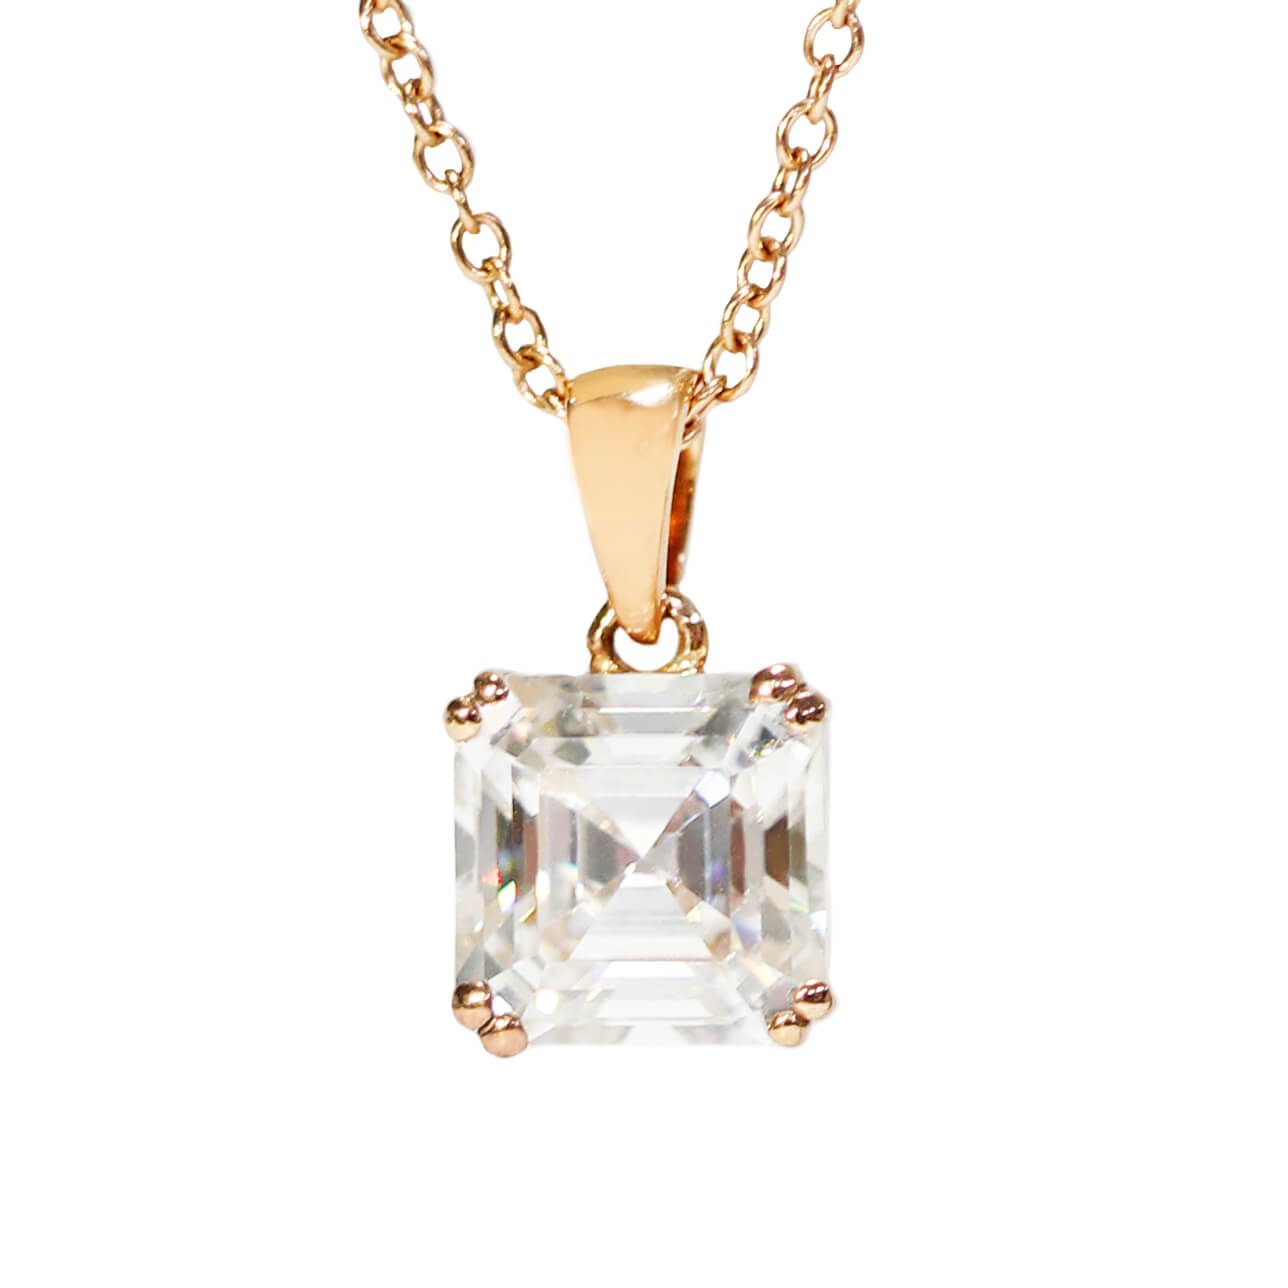 Asscher Cut Moissanite 18K Gold Pendant - Lecaine Gems Moissanite